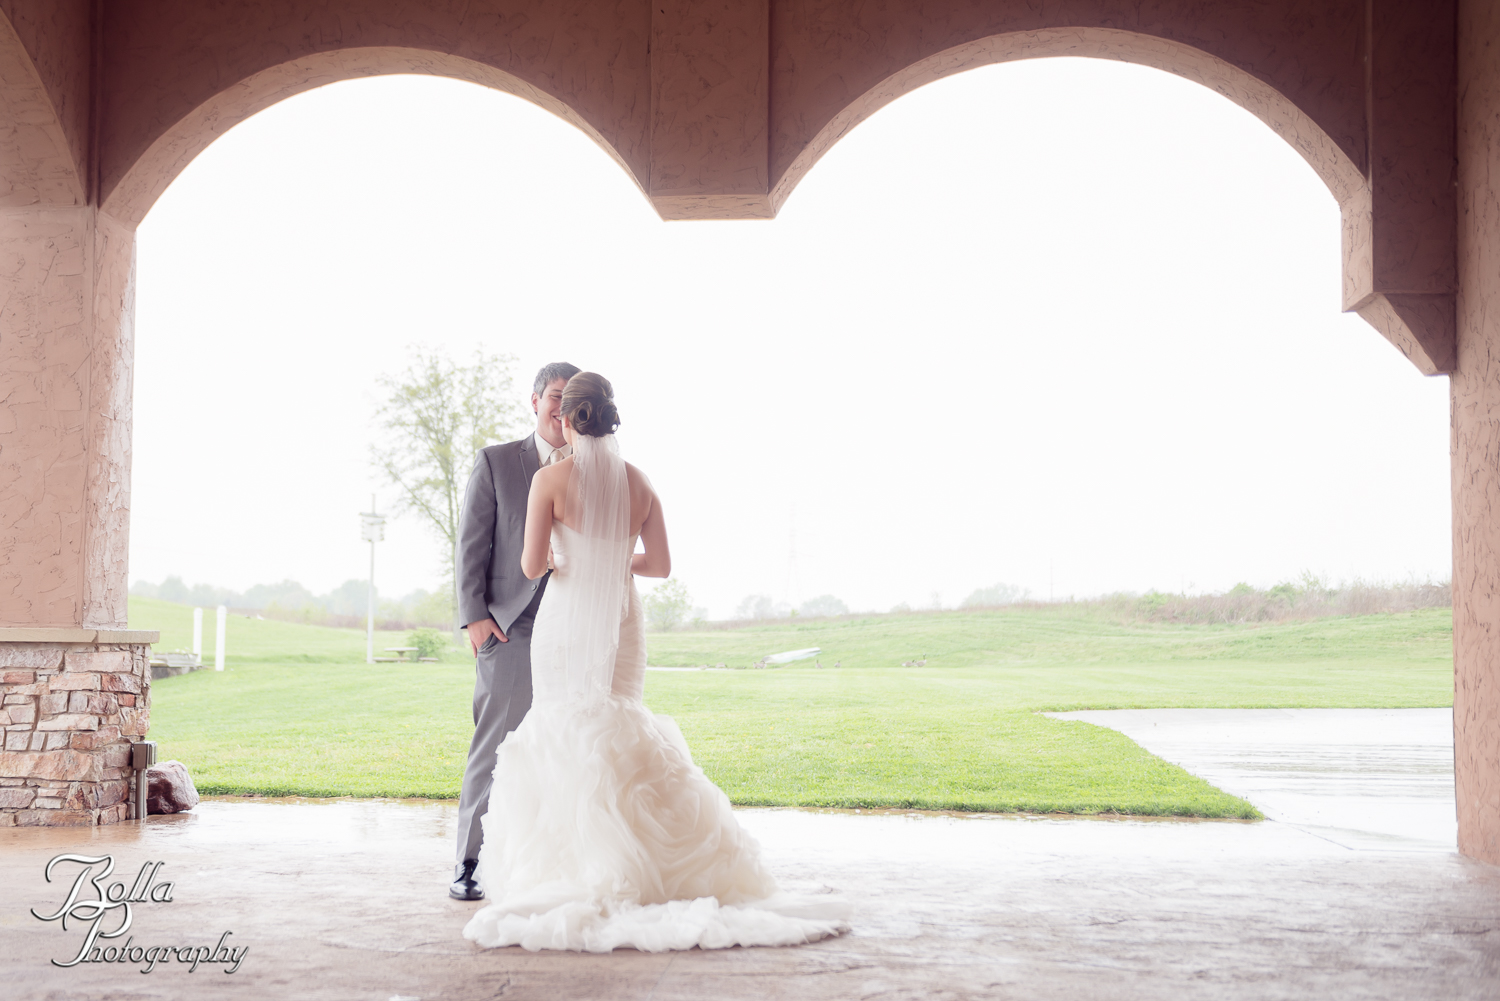 Bolla_Photography_St_Louis_wedding_photographer_Villa_Maire_Winery-0109.jpg